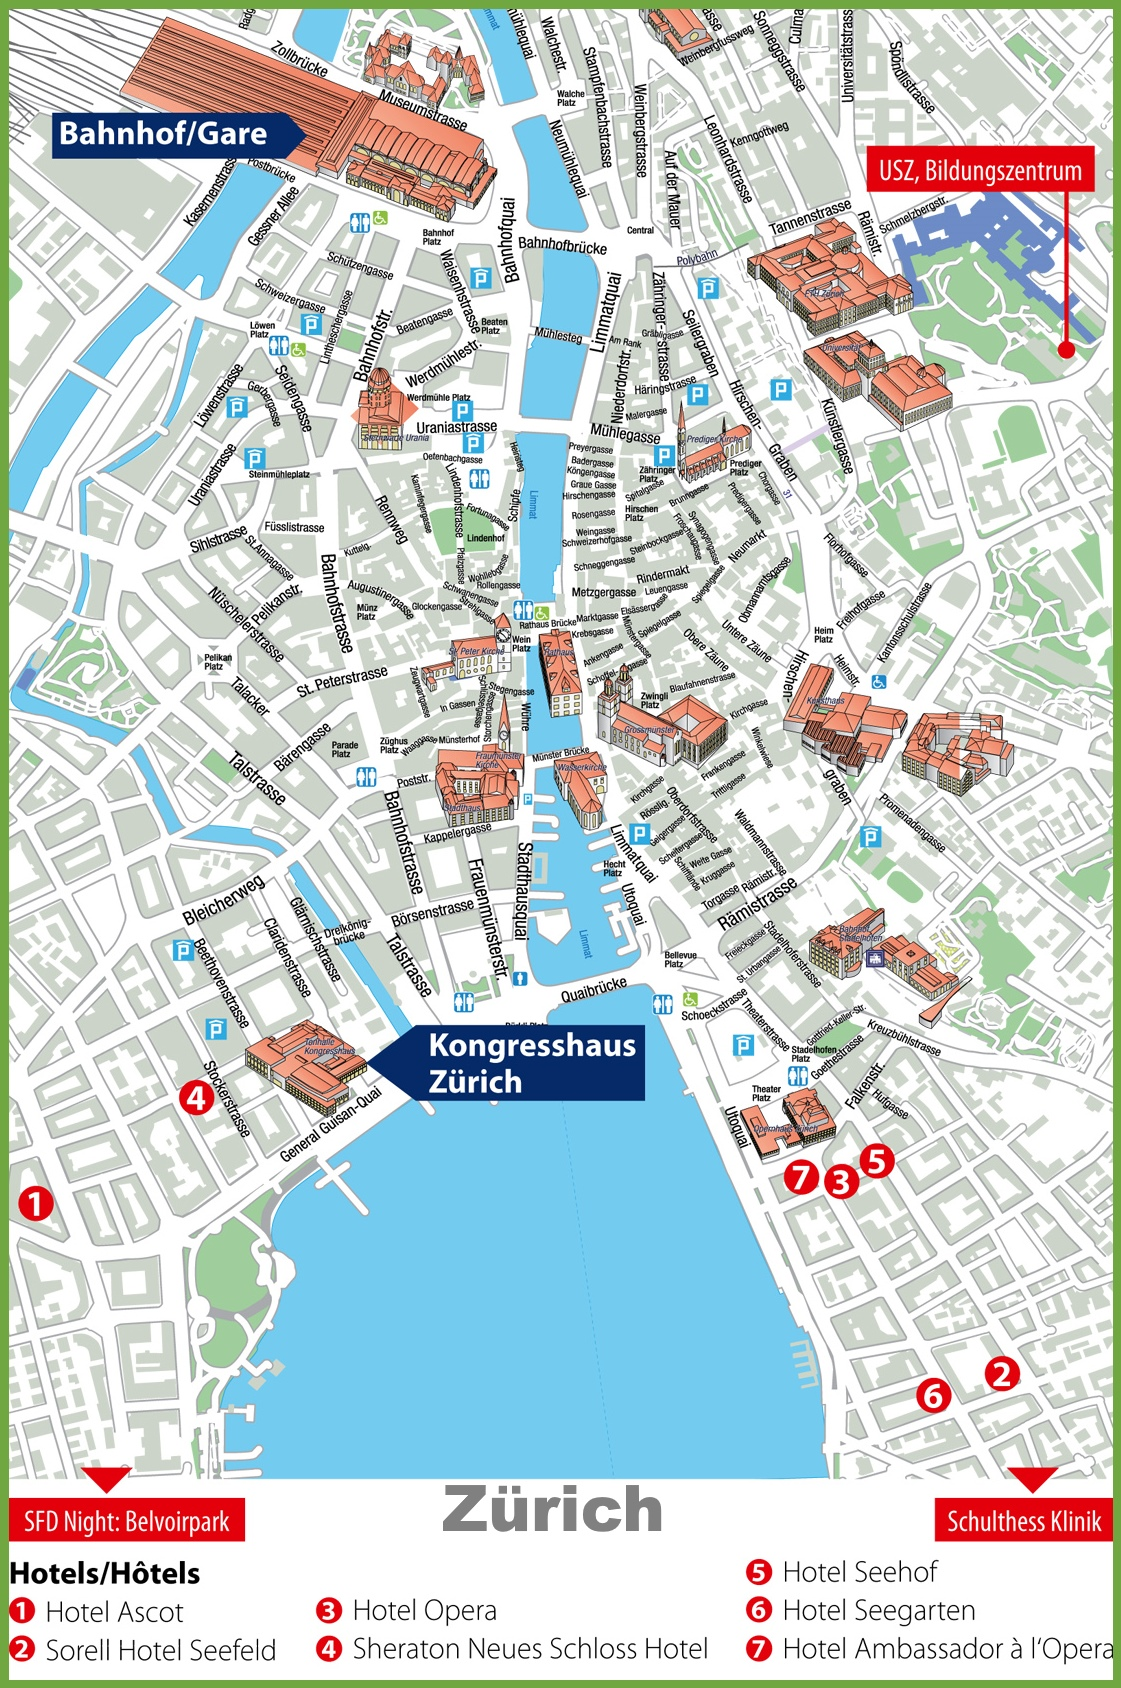 Zürich City Maps | Switzerland | Maps of Zürich (Zurich) on zurich metro map, zurich transportation map, zurich switzerland map, zurich tour map, zurich tourist attractions, zurich transport map, zurich hotel map, zurich airport map,